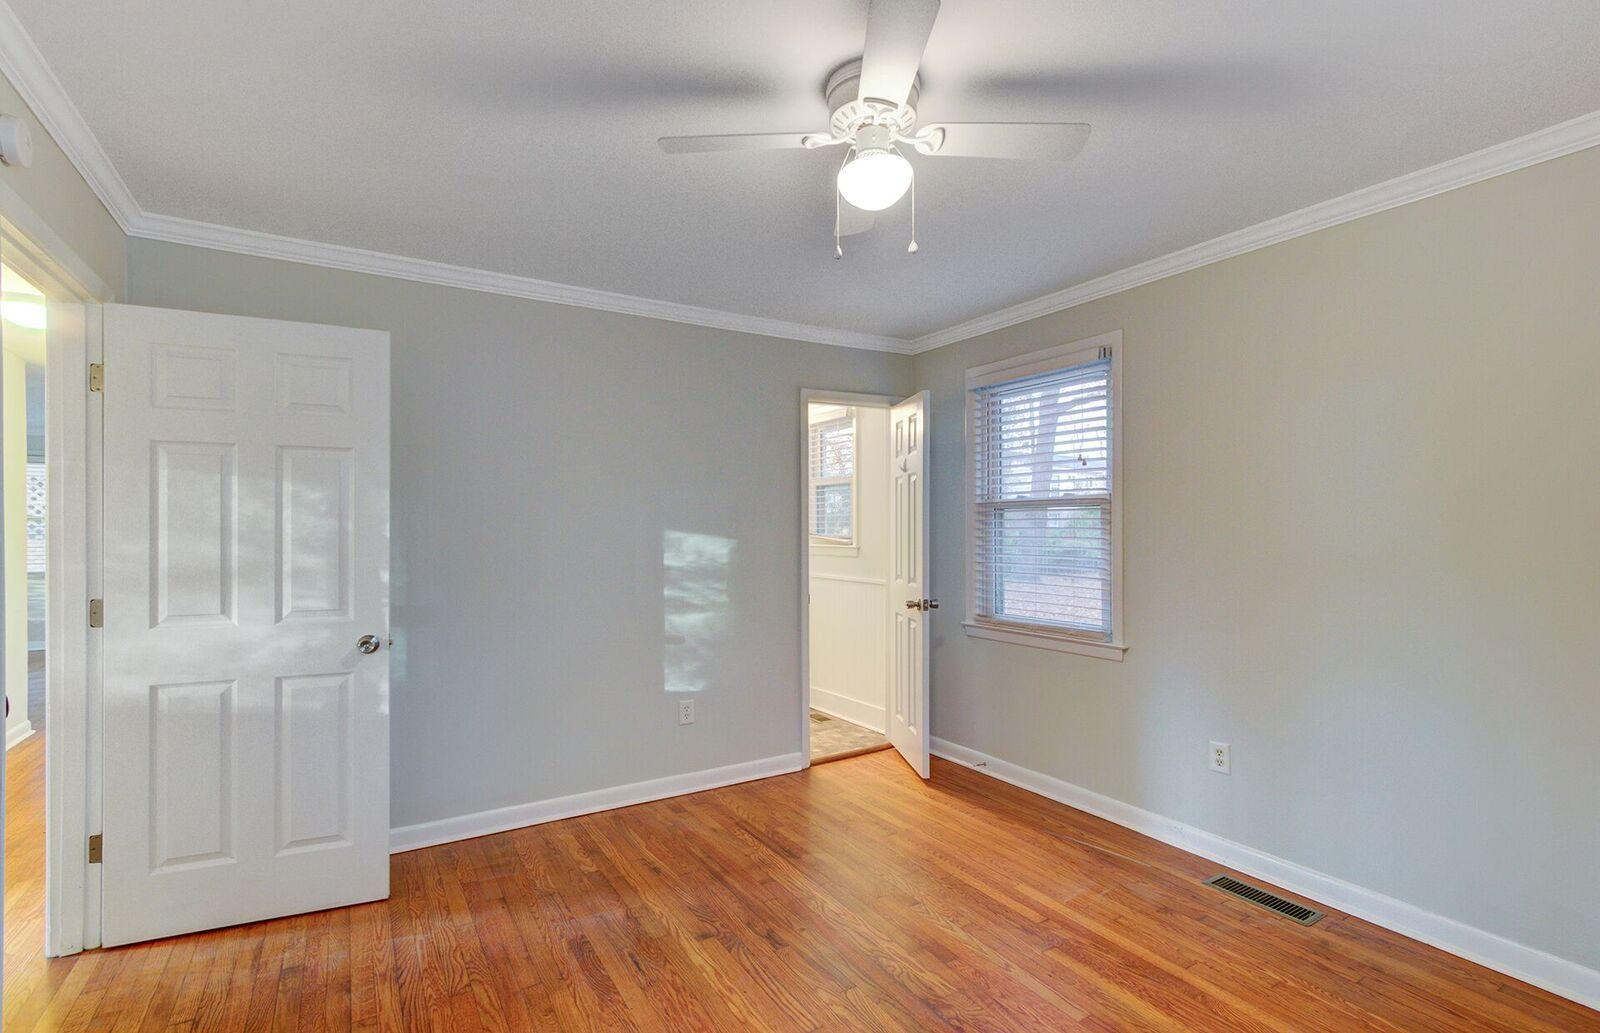 West Glow Homes For Sale - 1104 Crull, Charleston, SC - 11